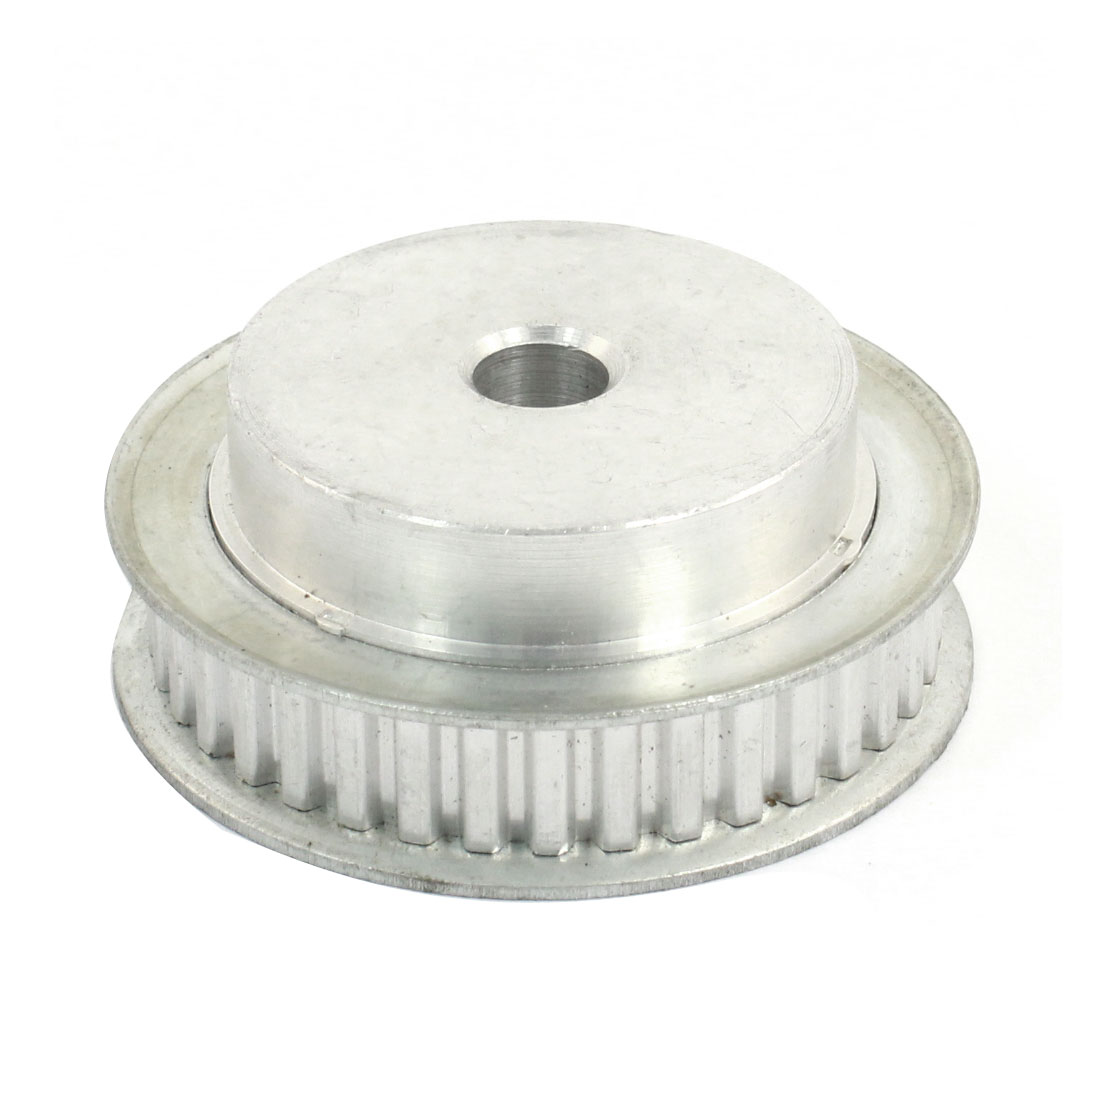 Stepper Motor 38 Teeth 10mm Bore XL Type Aluminum Alloy Timing Belt Pulley